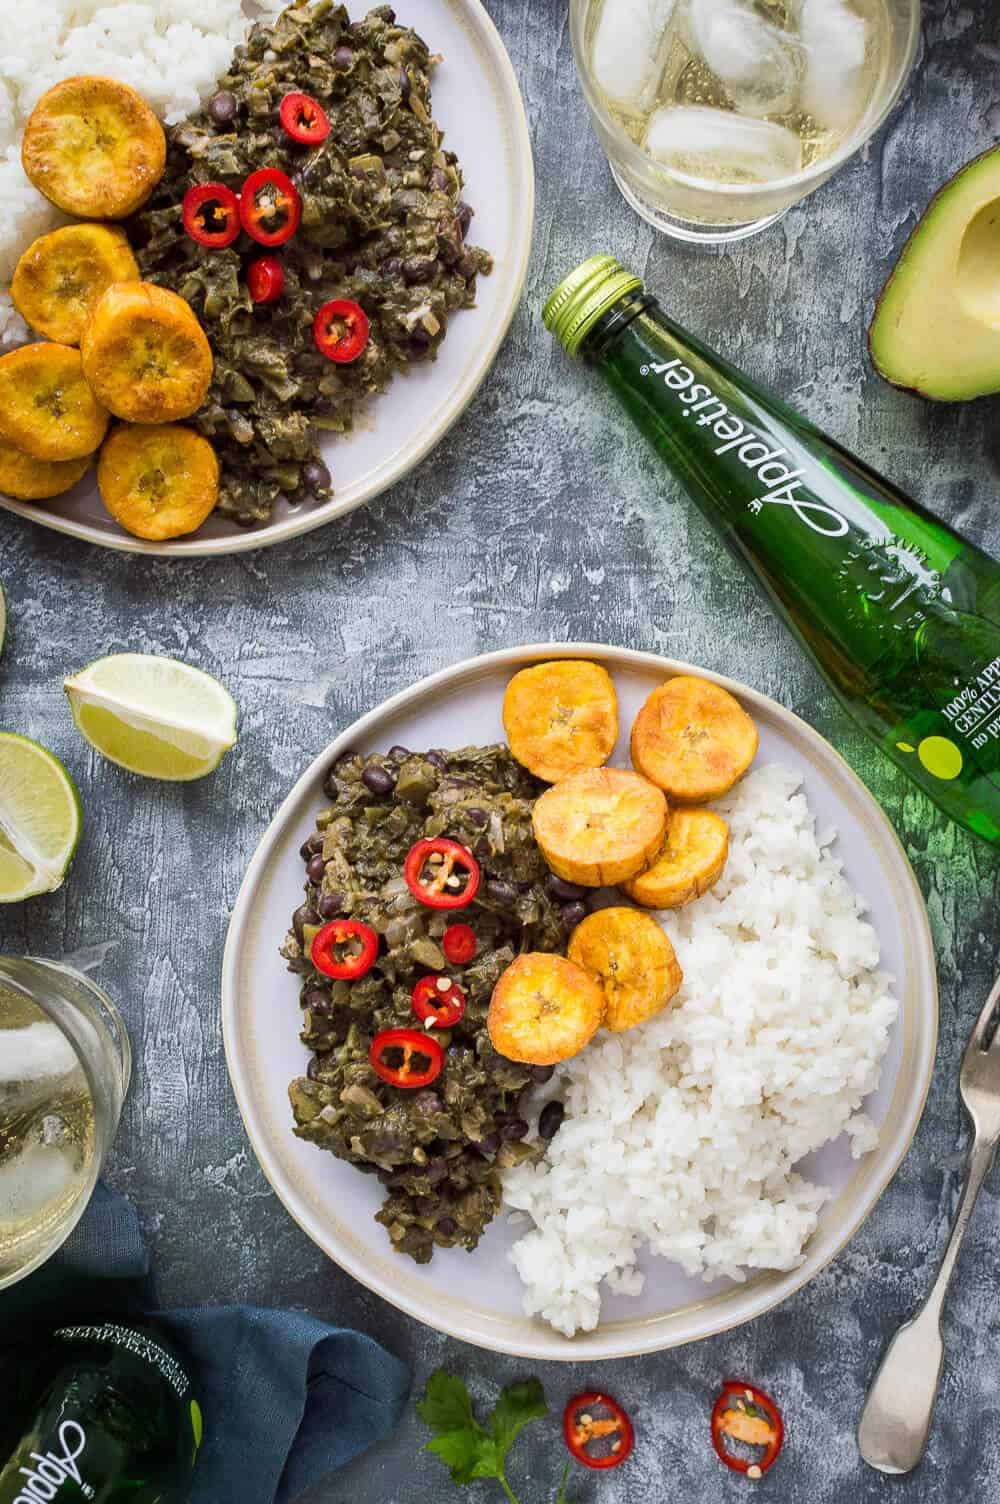 Two plates of vegan spiced black beans and callaloo with coconut rice and fried plantain on a grey background with lime, avocado and Appletiser.